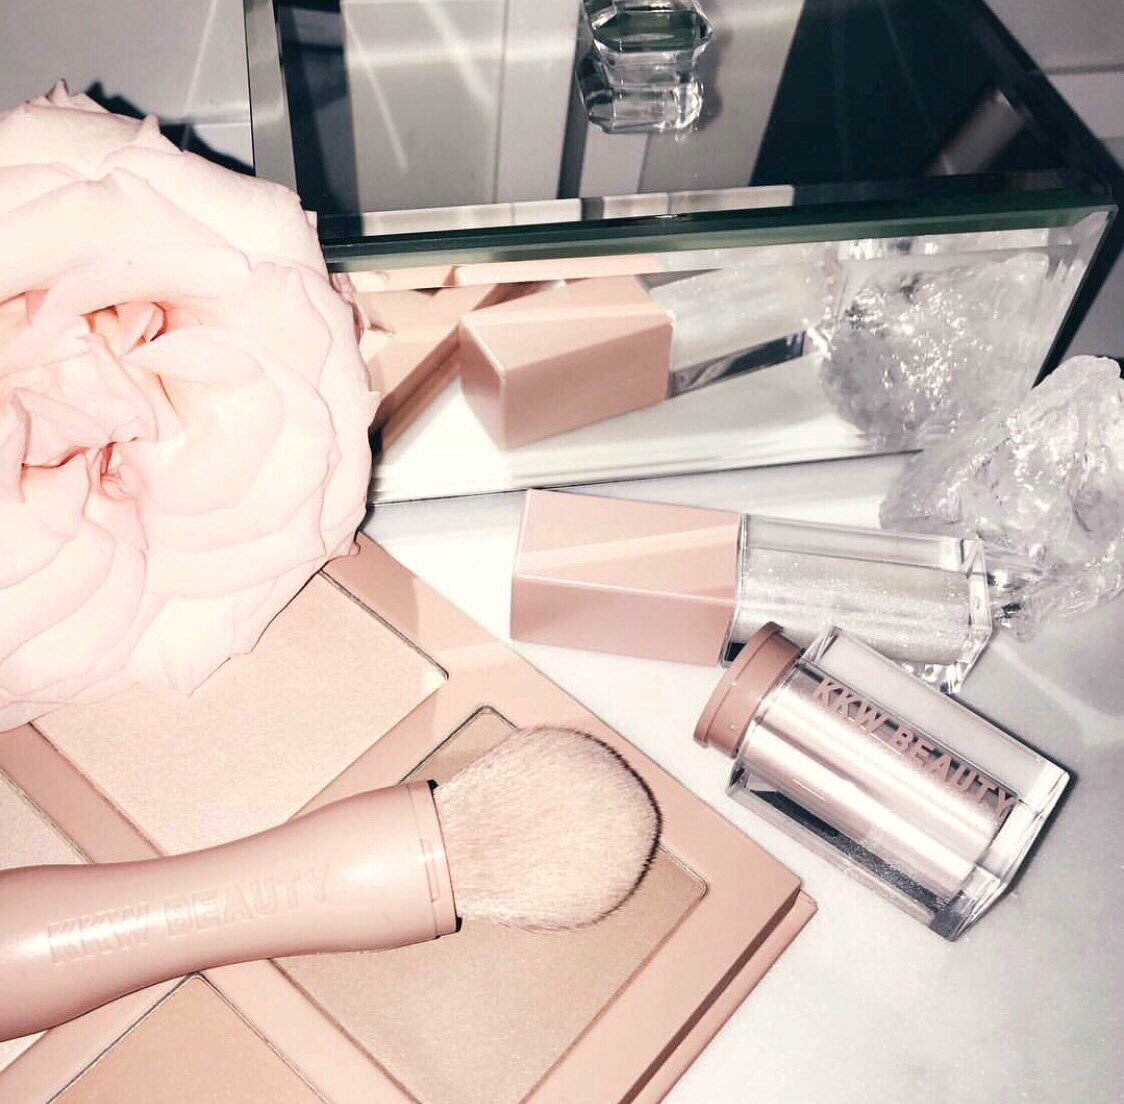 RT @kkwbeauty: How do you like to organize your vanity? Repost Mademoisellevuitton https://t.co/rtzybbMT0c